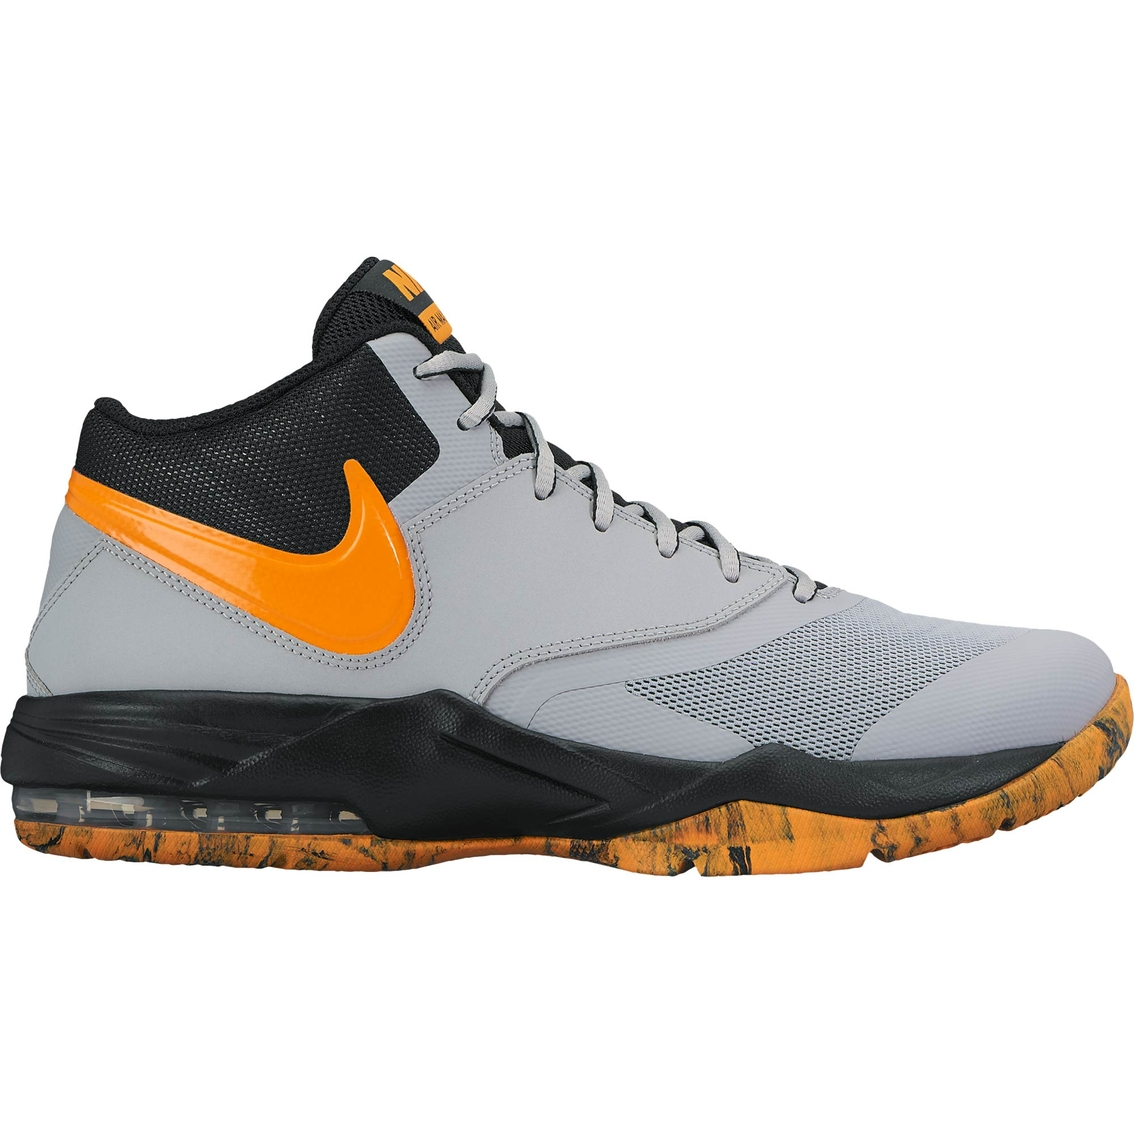 739556d8d8a9 Nike Men s Air Max Emergent Basketball Shoes